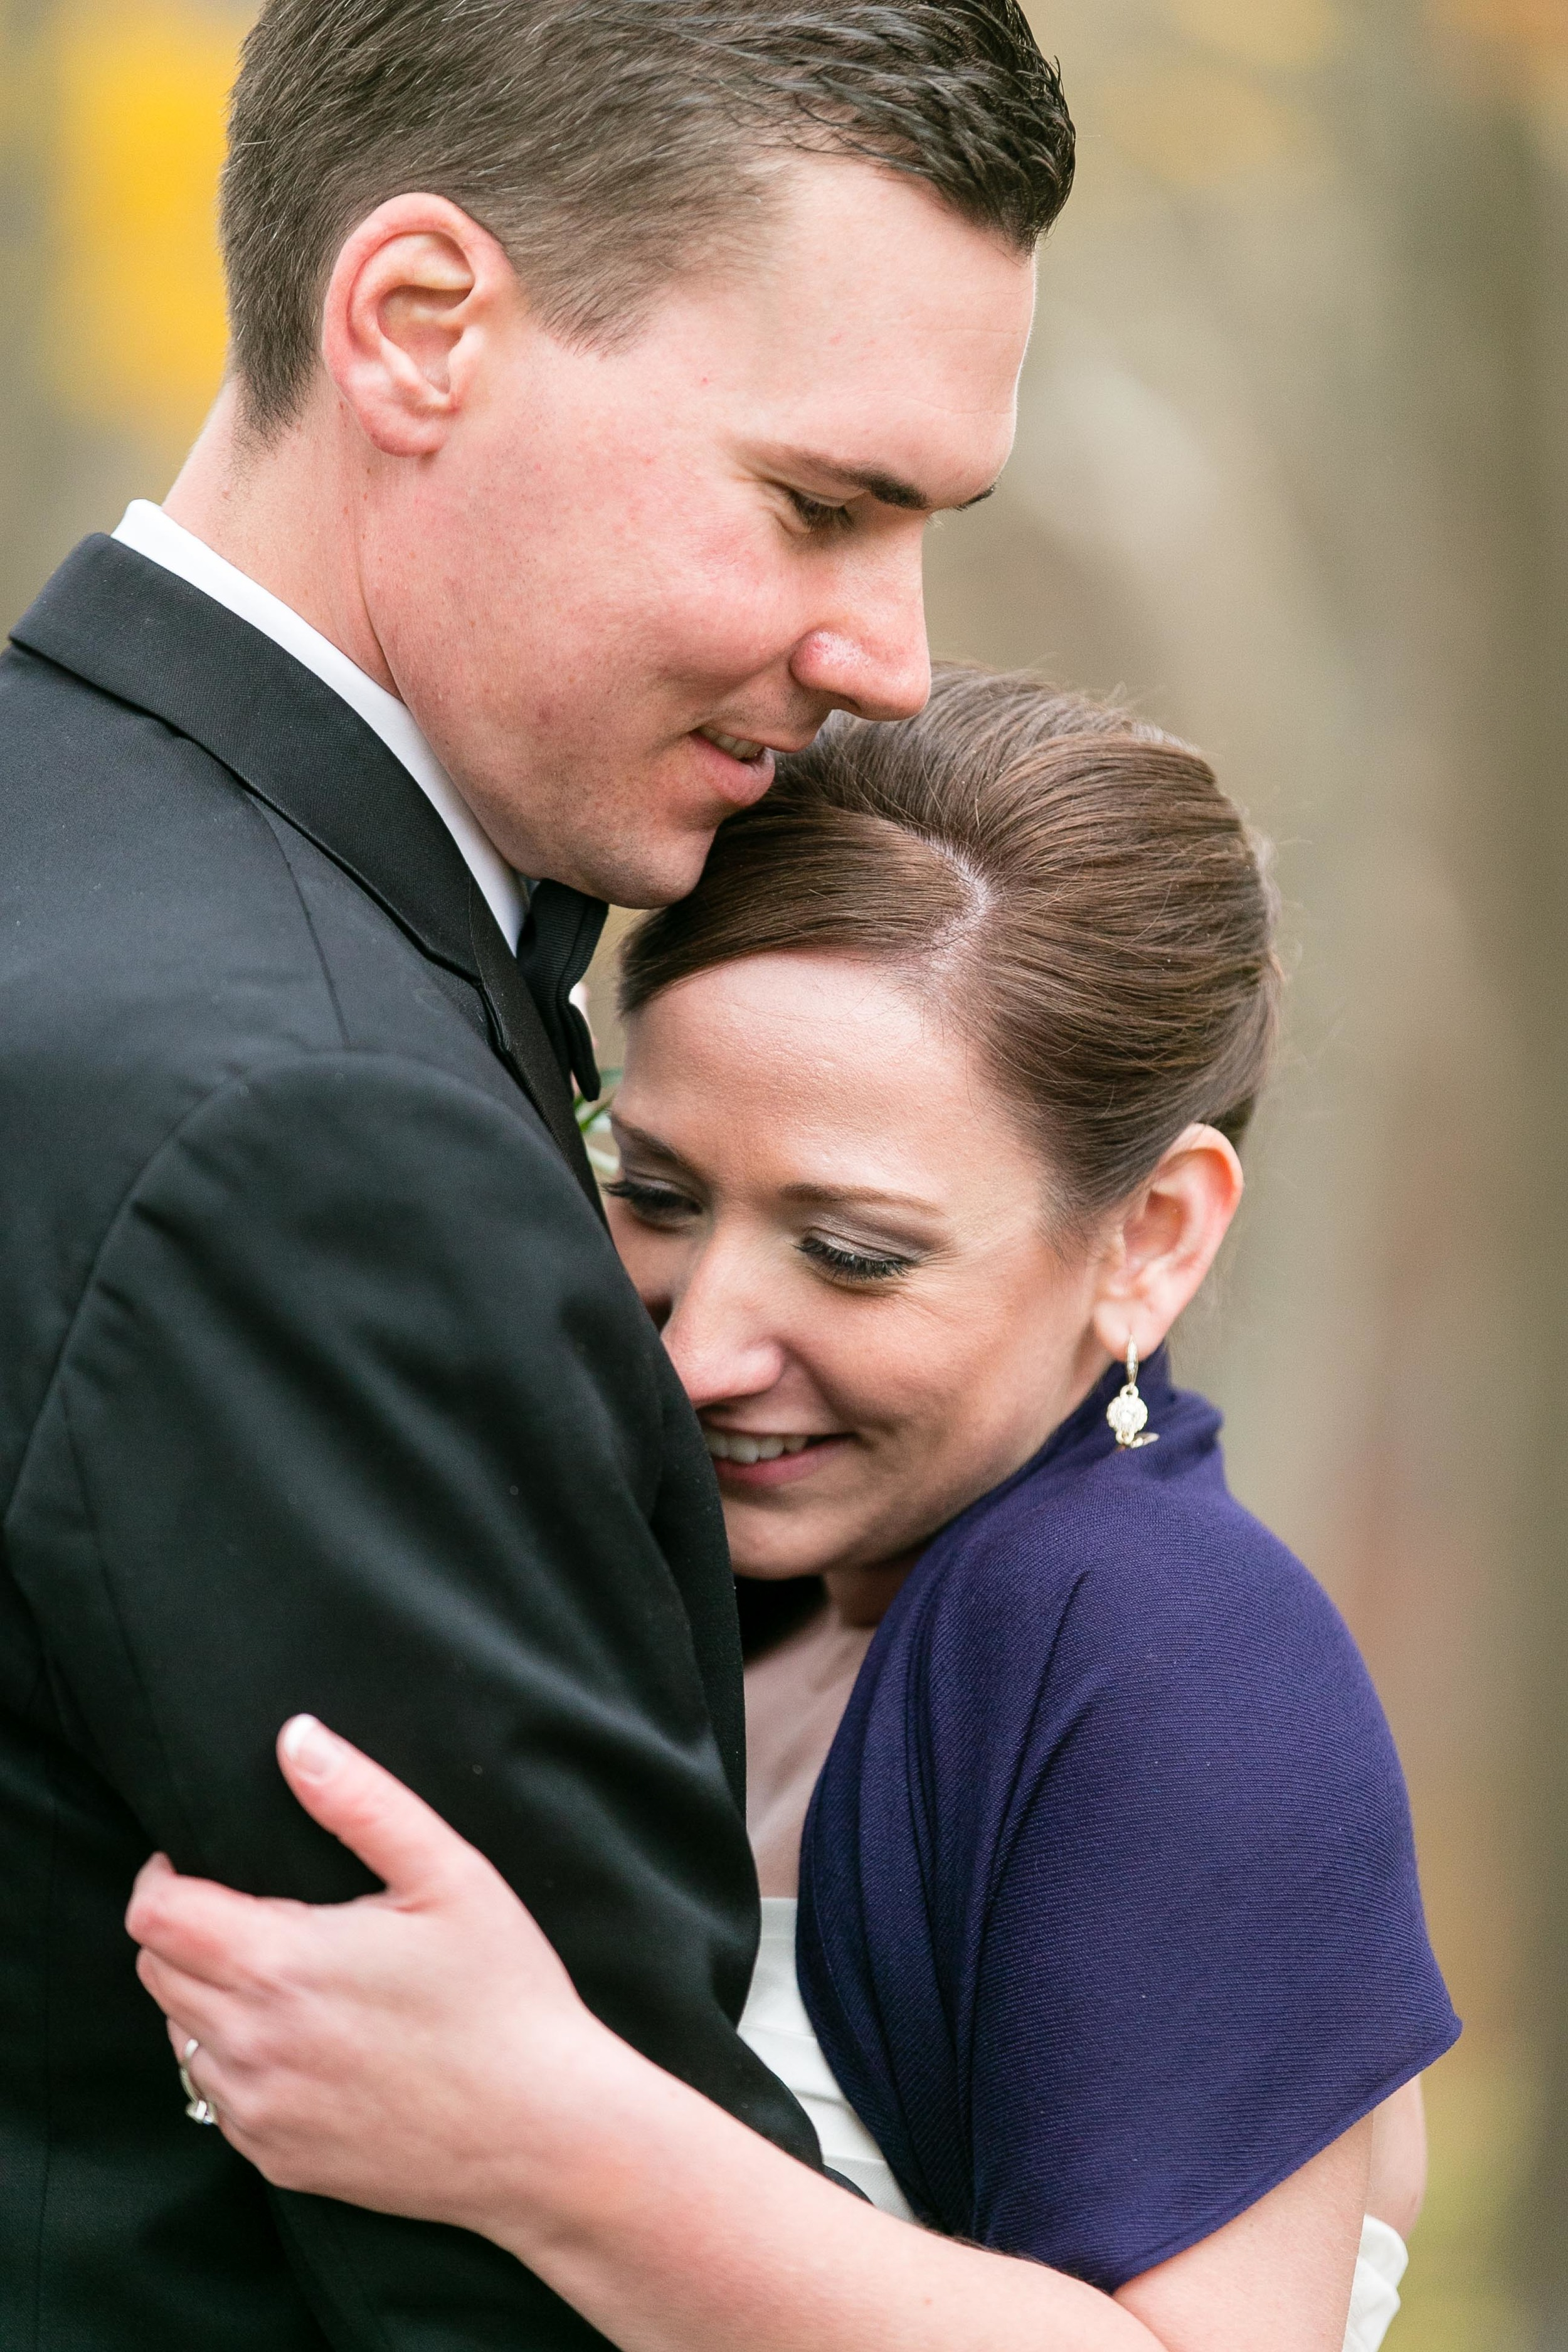 American-Romantic-Wedding-Riverview-Simsbury-Documentary-Photography-by-Jacek-Dolata-3.jpg